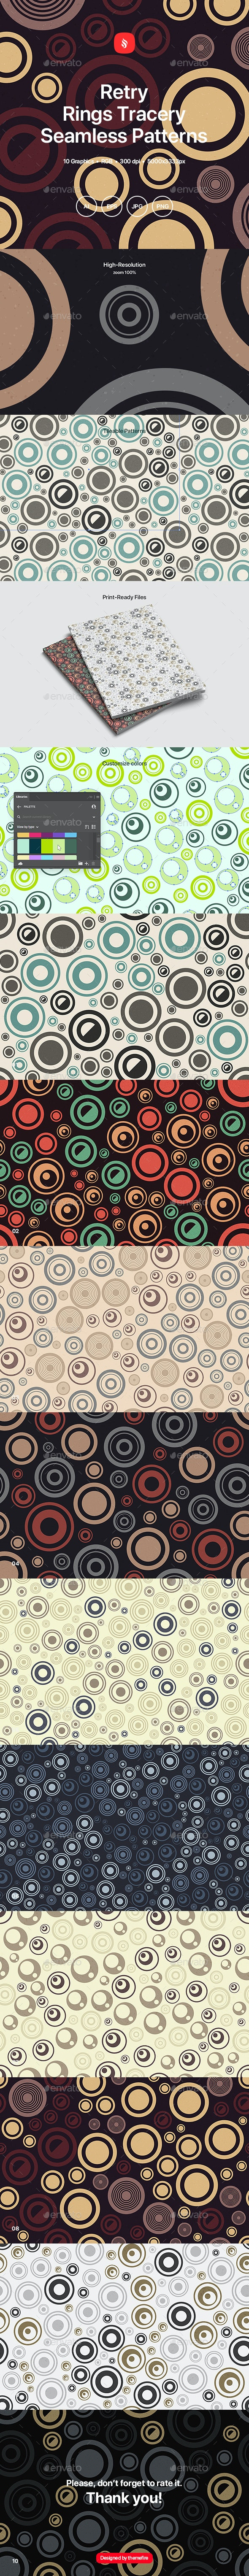 Retry - Rings Tracery Seamless Patterns - Patterns Backgrounds